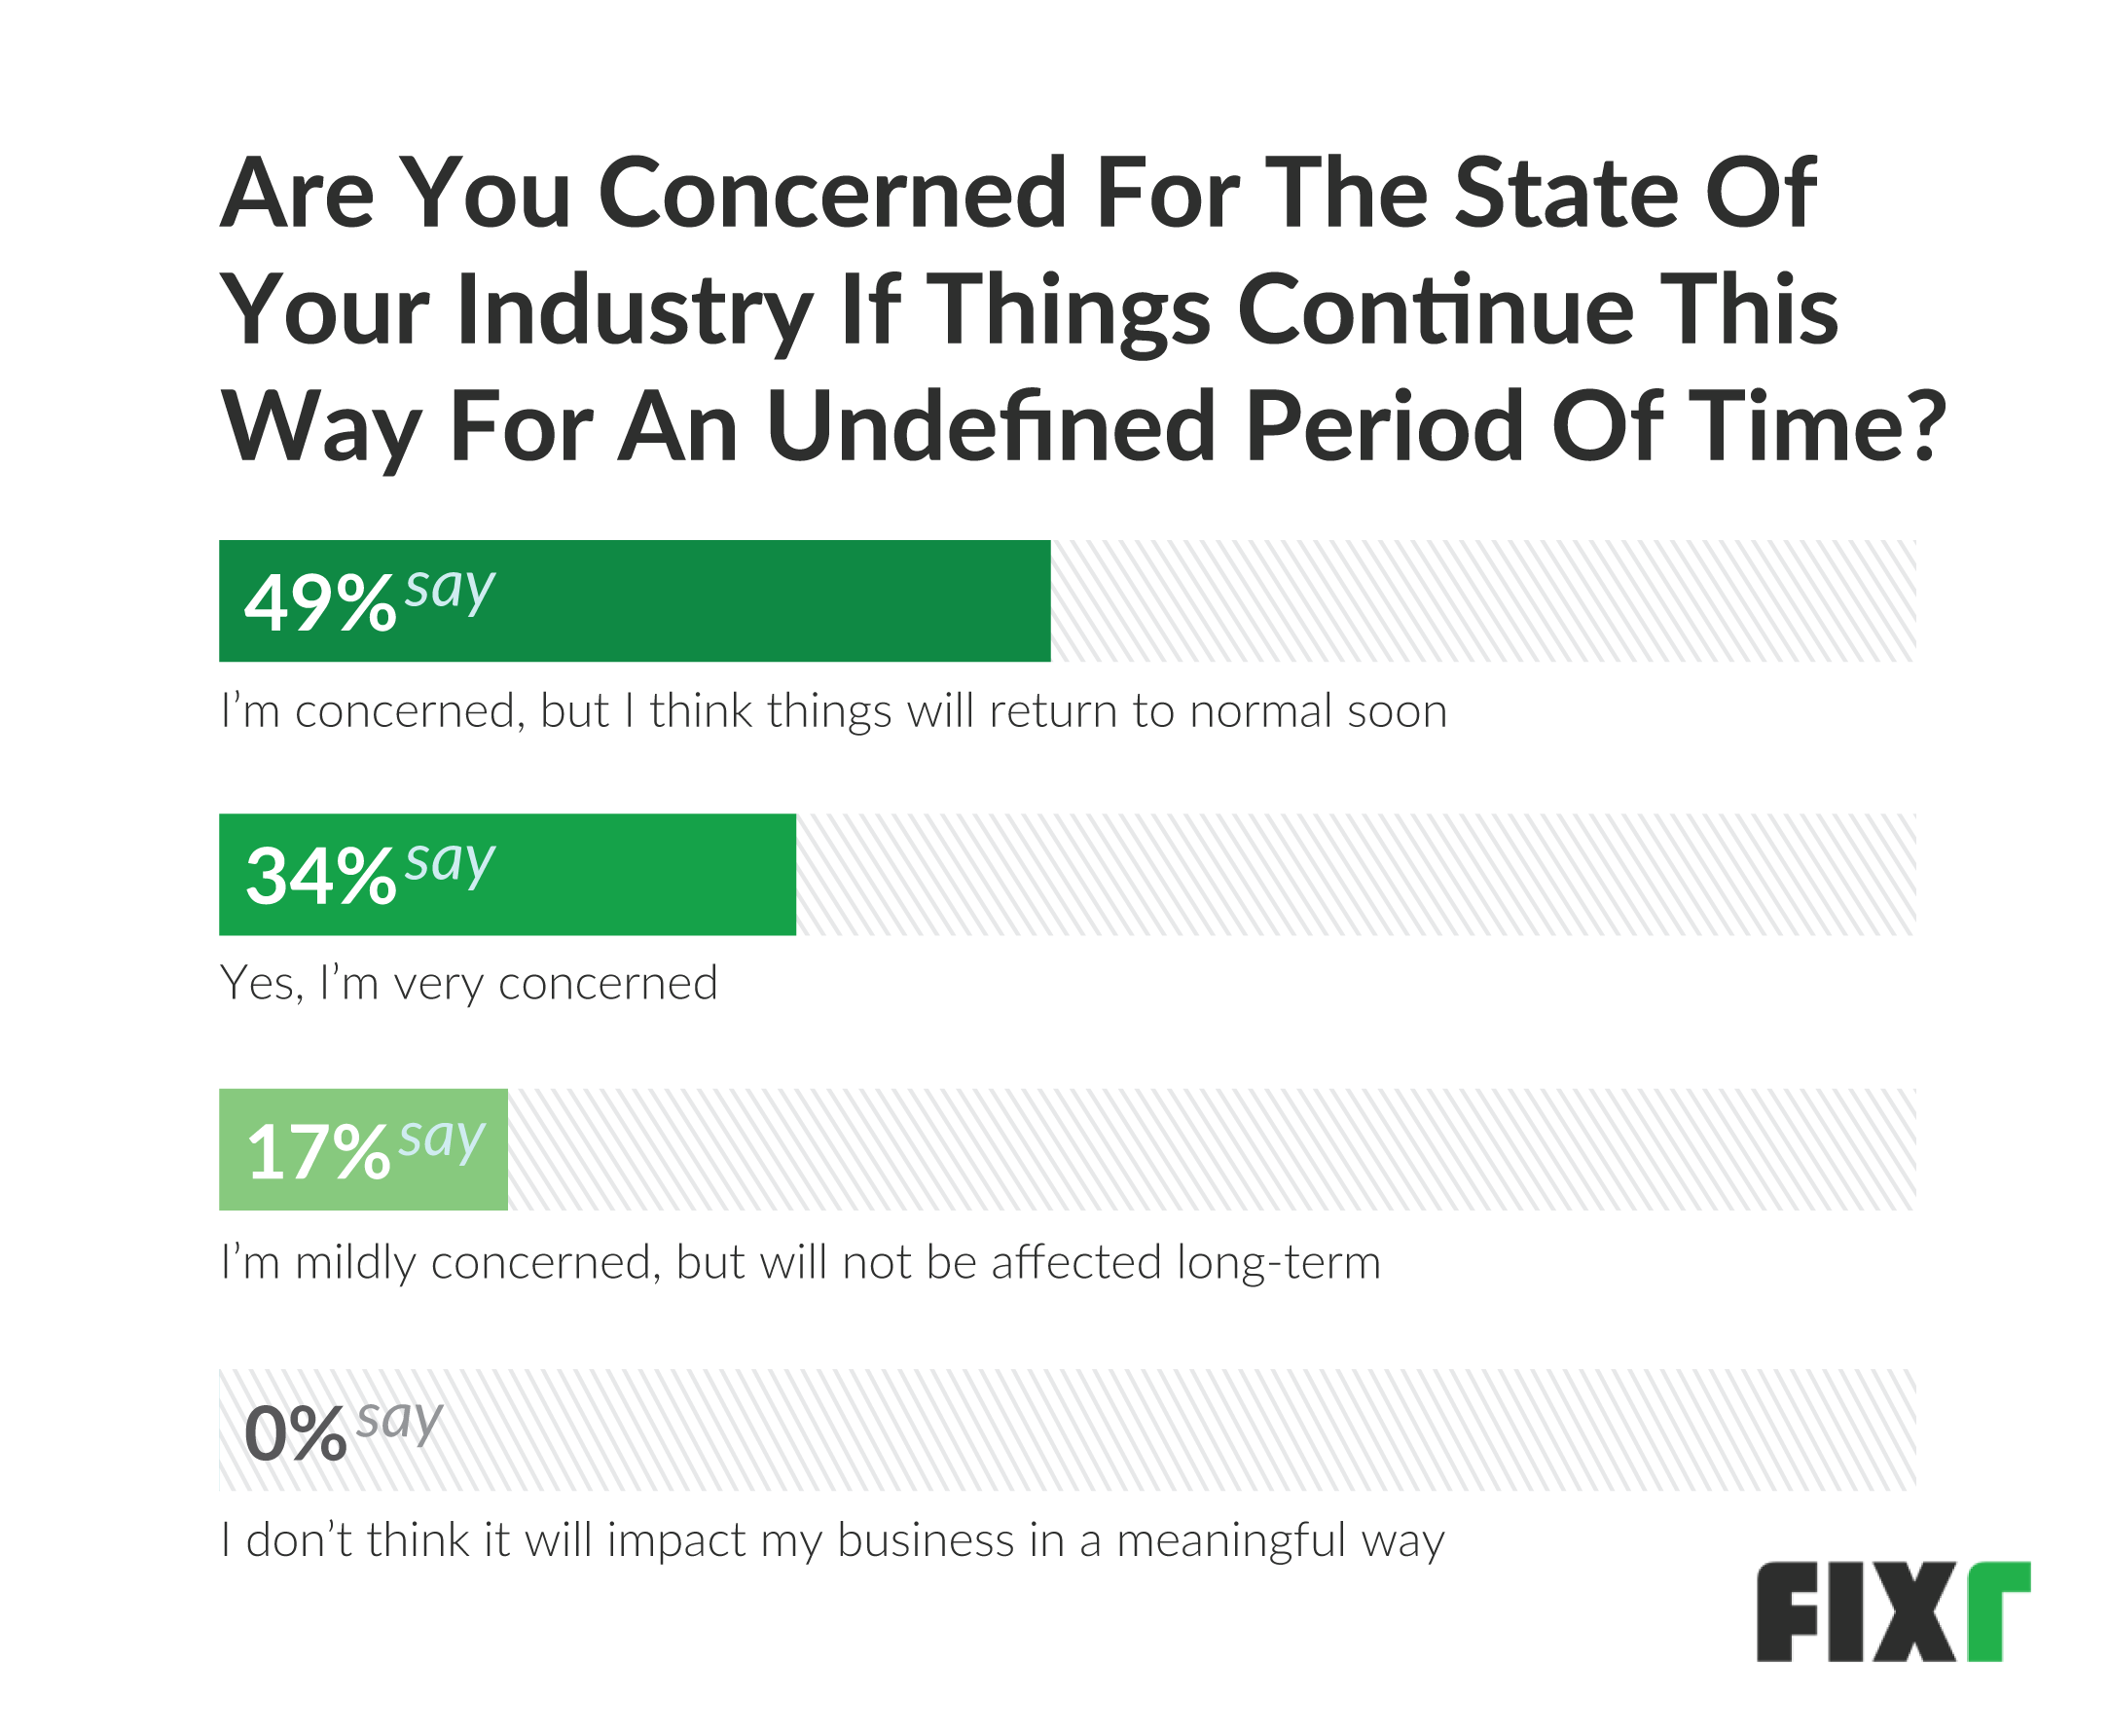 Are you concerned for state of industry